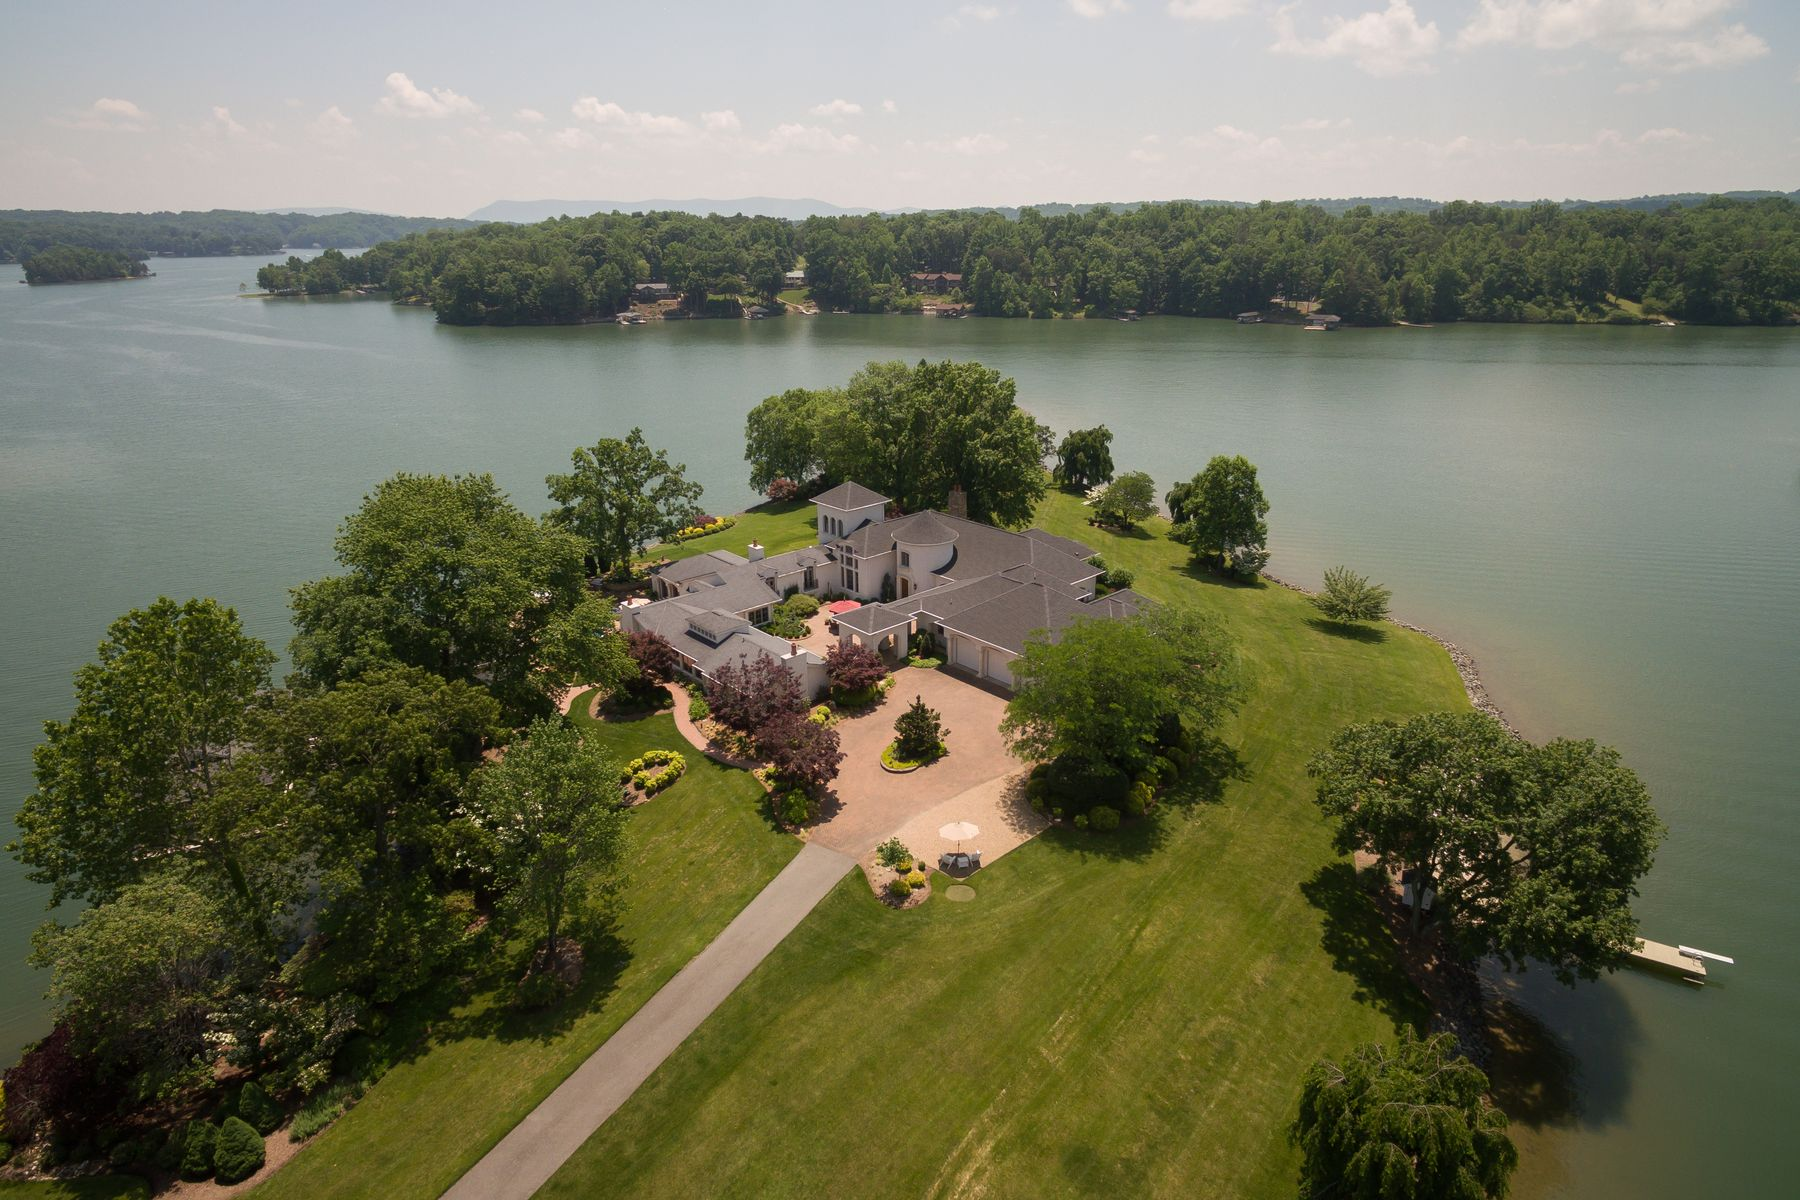 Casa Unifamiliar por un Venta en Smith Mountain Lake Estate 1994 Merriman Way Dr Moneta, Virginia 24121 United States